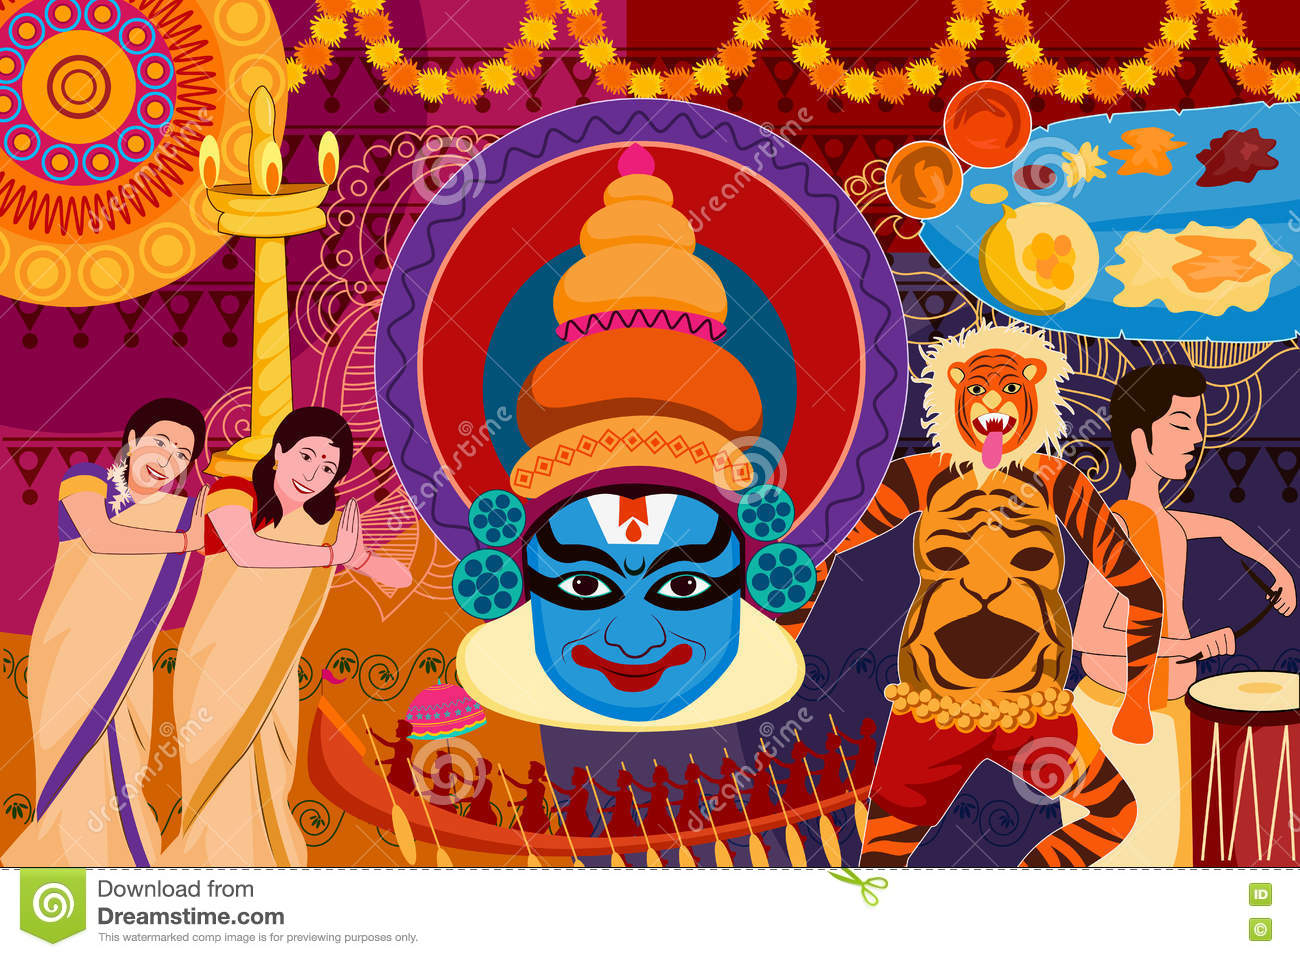 kathakali cartoons pictures illustrations - photo #1